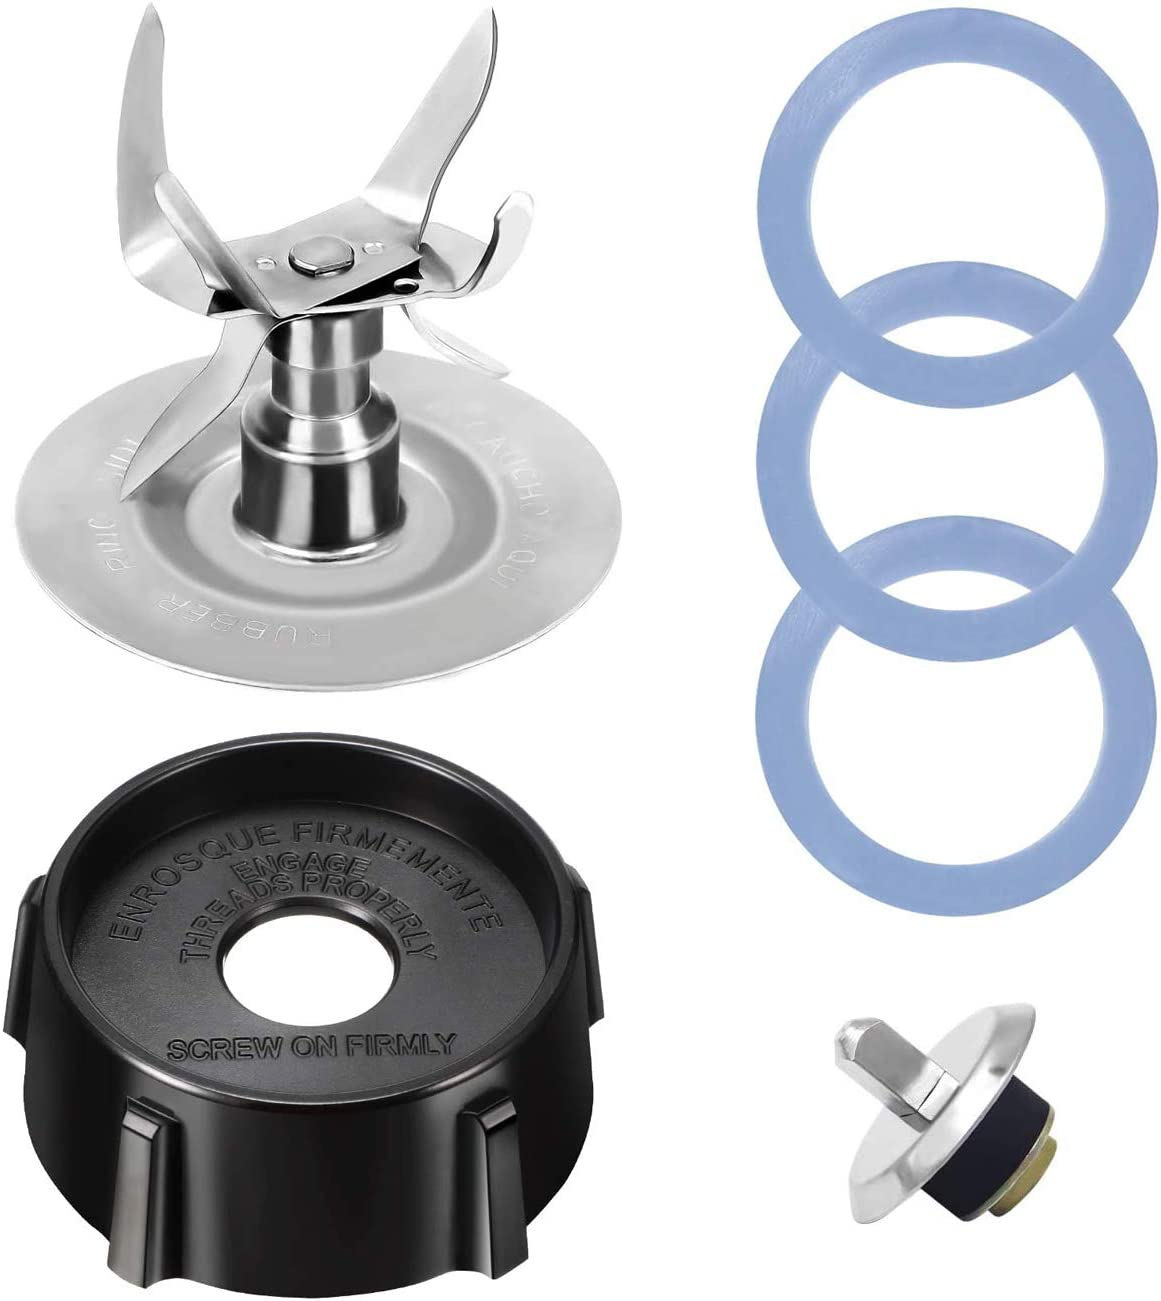 Replacement Parts Compatible with Oster Blender Ice Blades, Coming with Bottom Cap, Coupling Pin Kit, 3 Rubber O Sealing Ring Gaskets, Classic Blender Accessories Refresh Kit for Oster & Osterizer